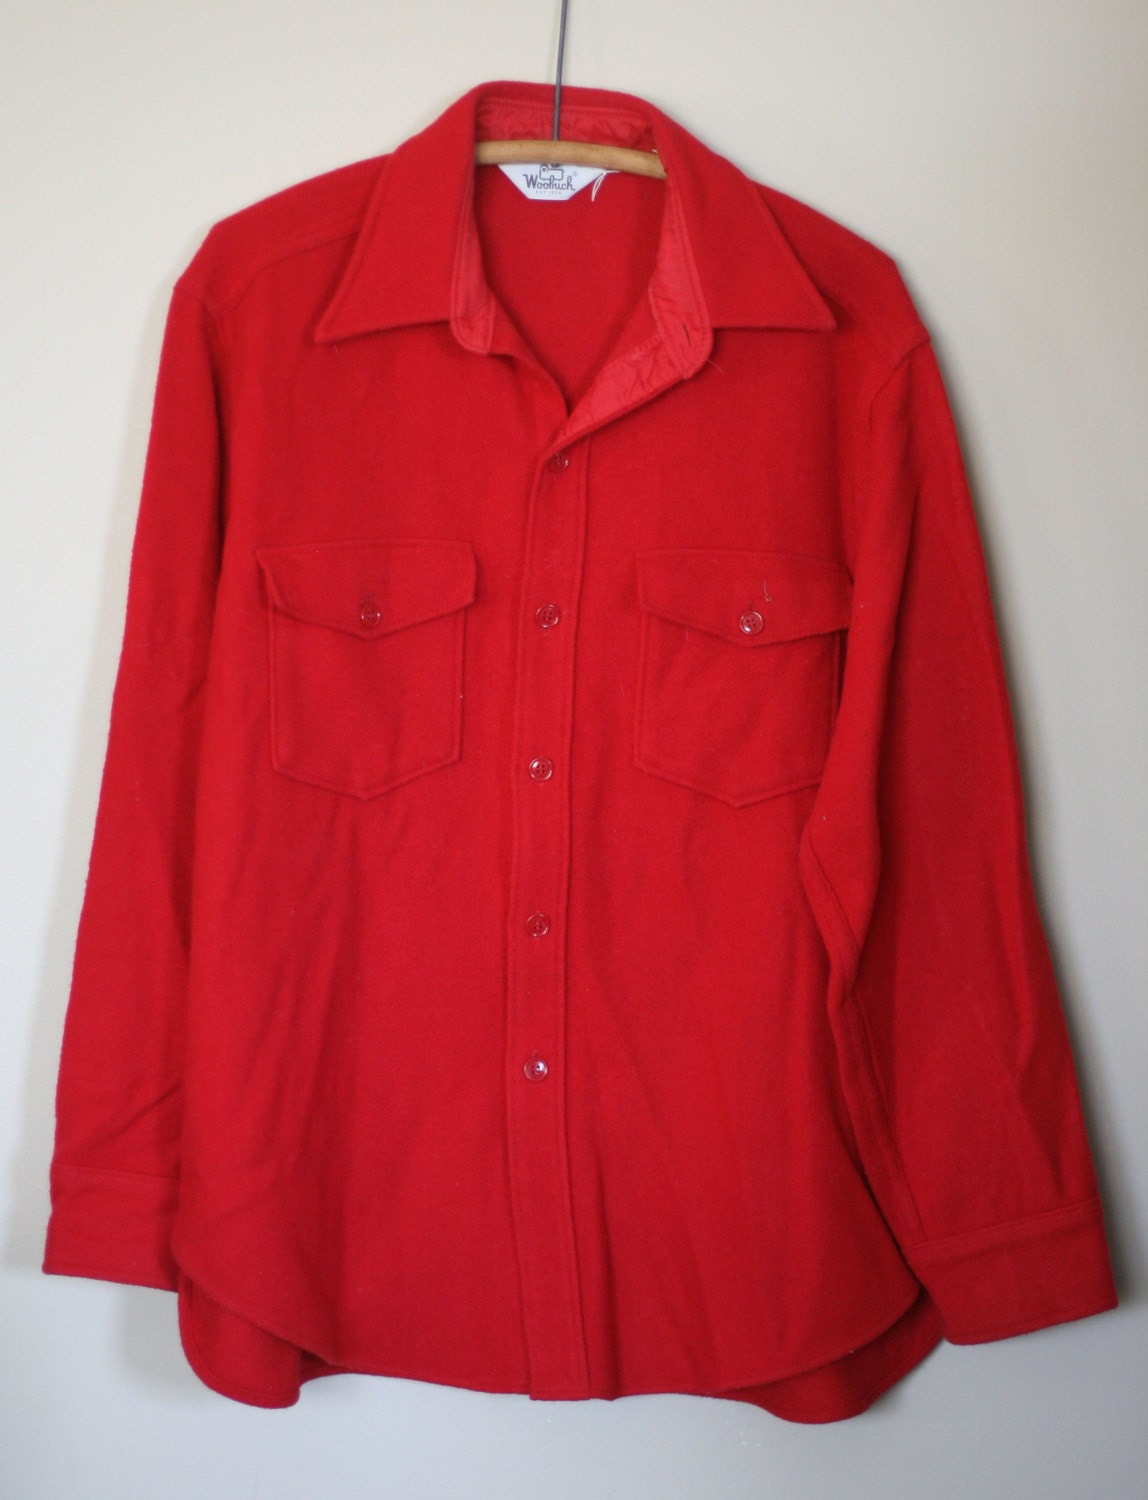 Vintage woolrich shirt men 39 s size l red wool nylon blend for Mens red wool shirt